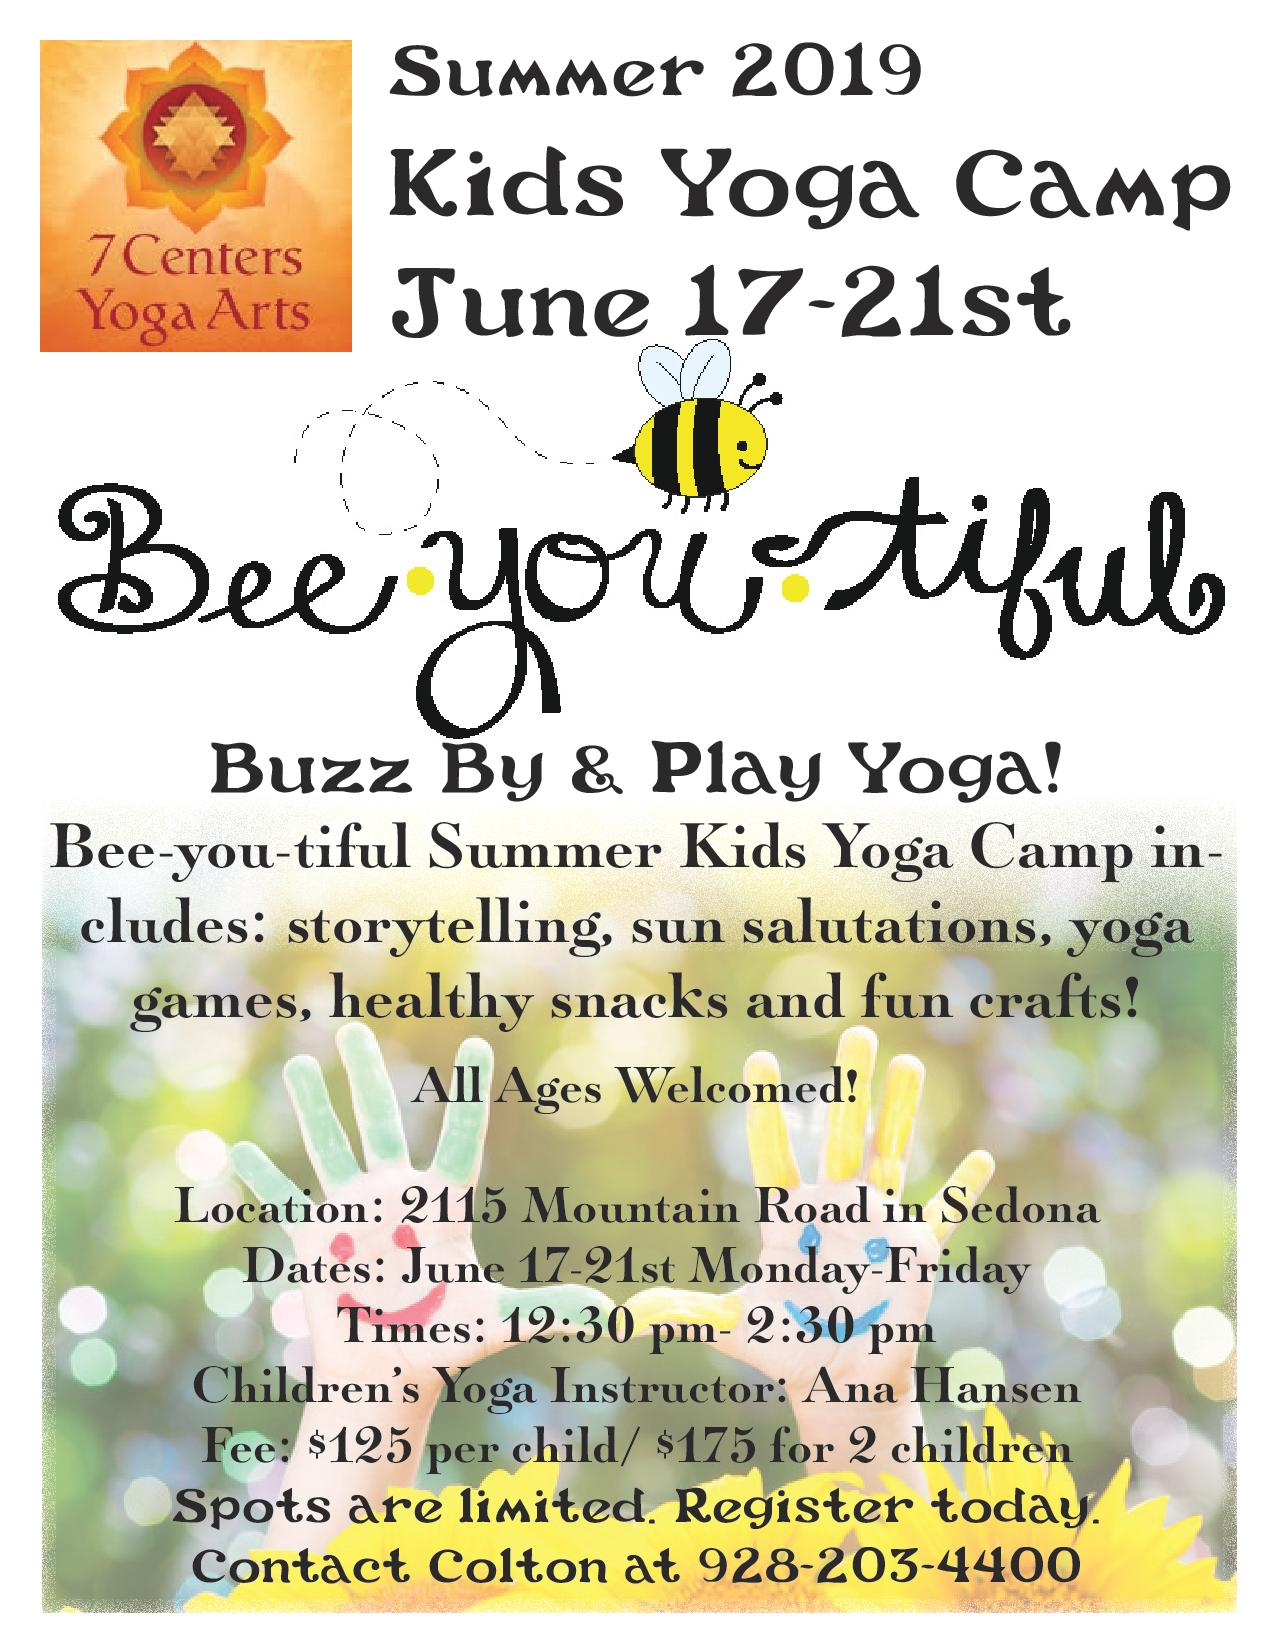 Bee-you-tiful Kids Yoga Camp